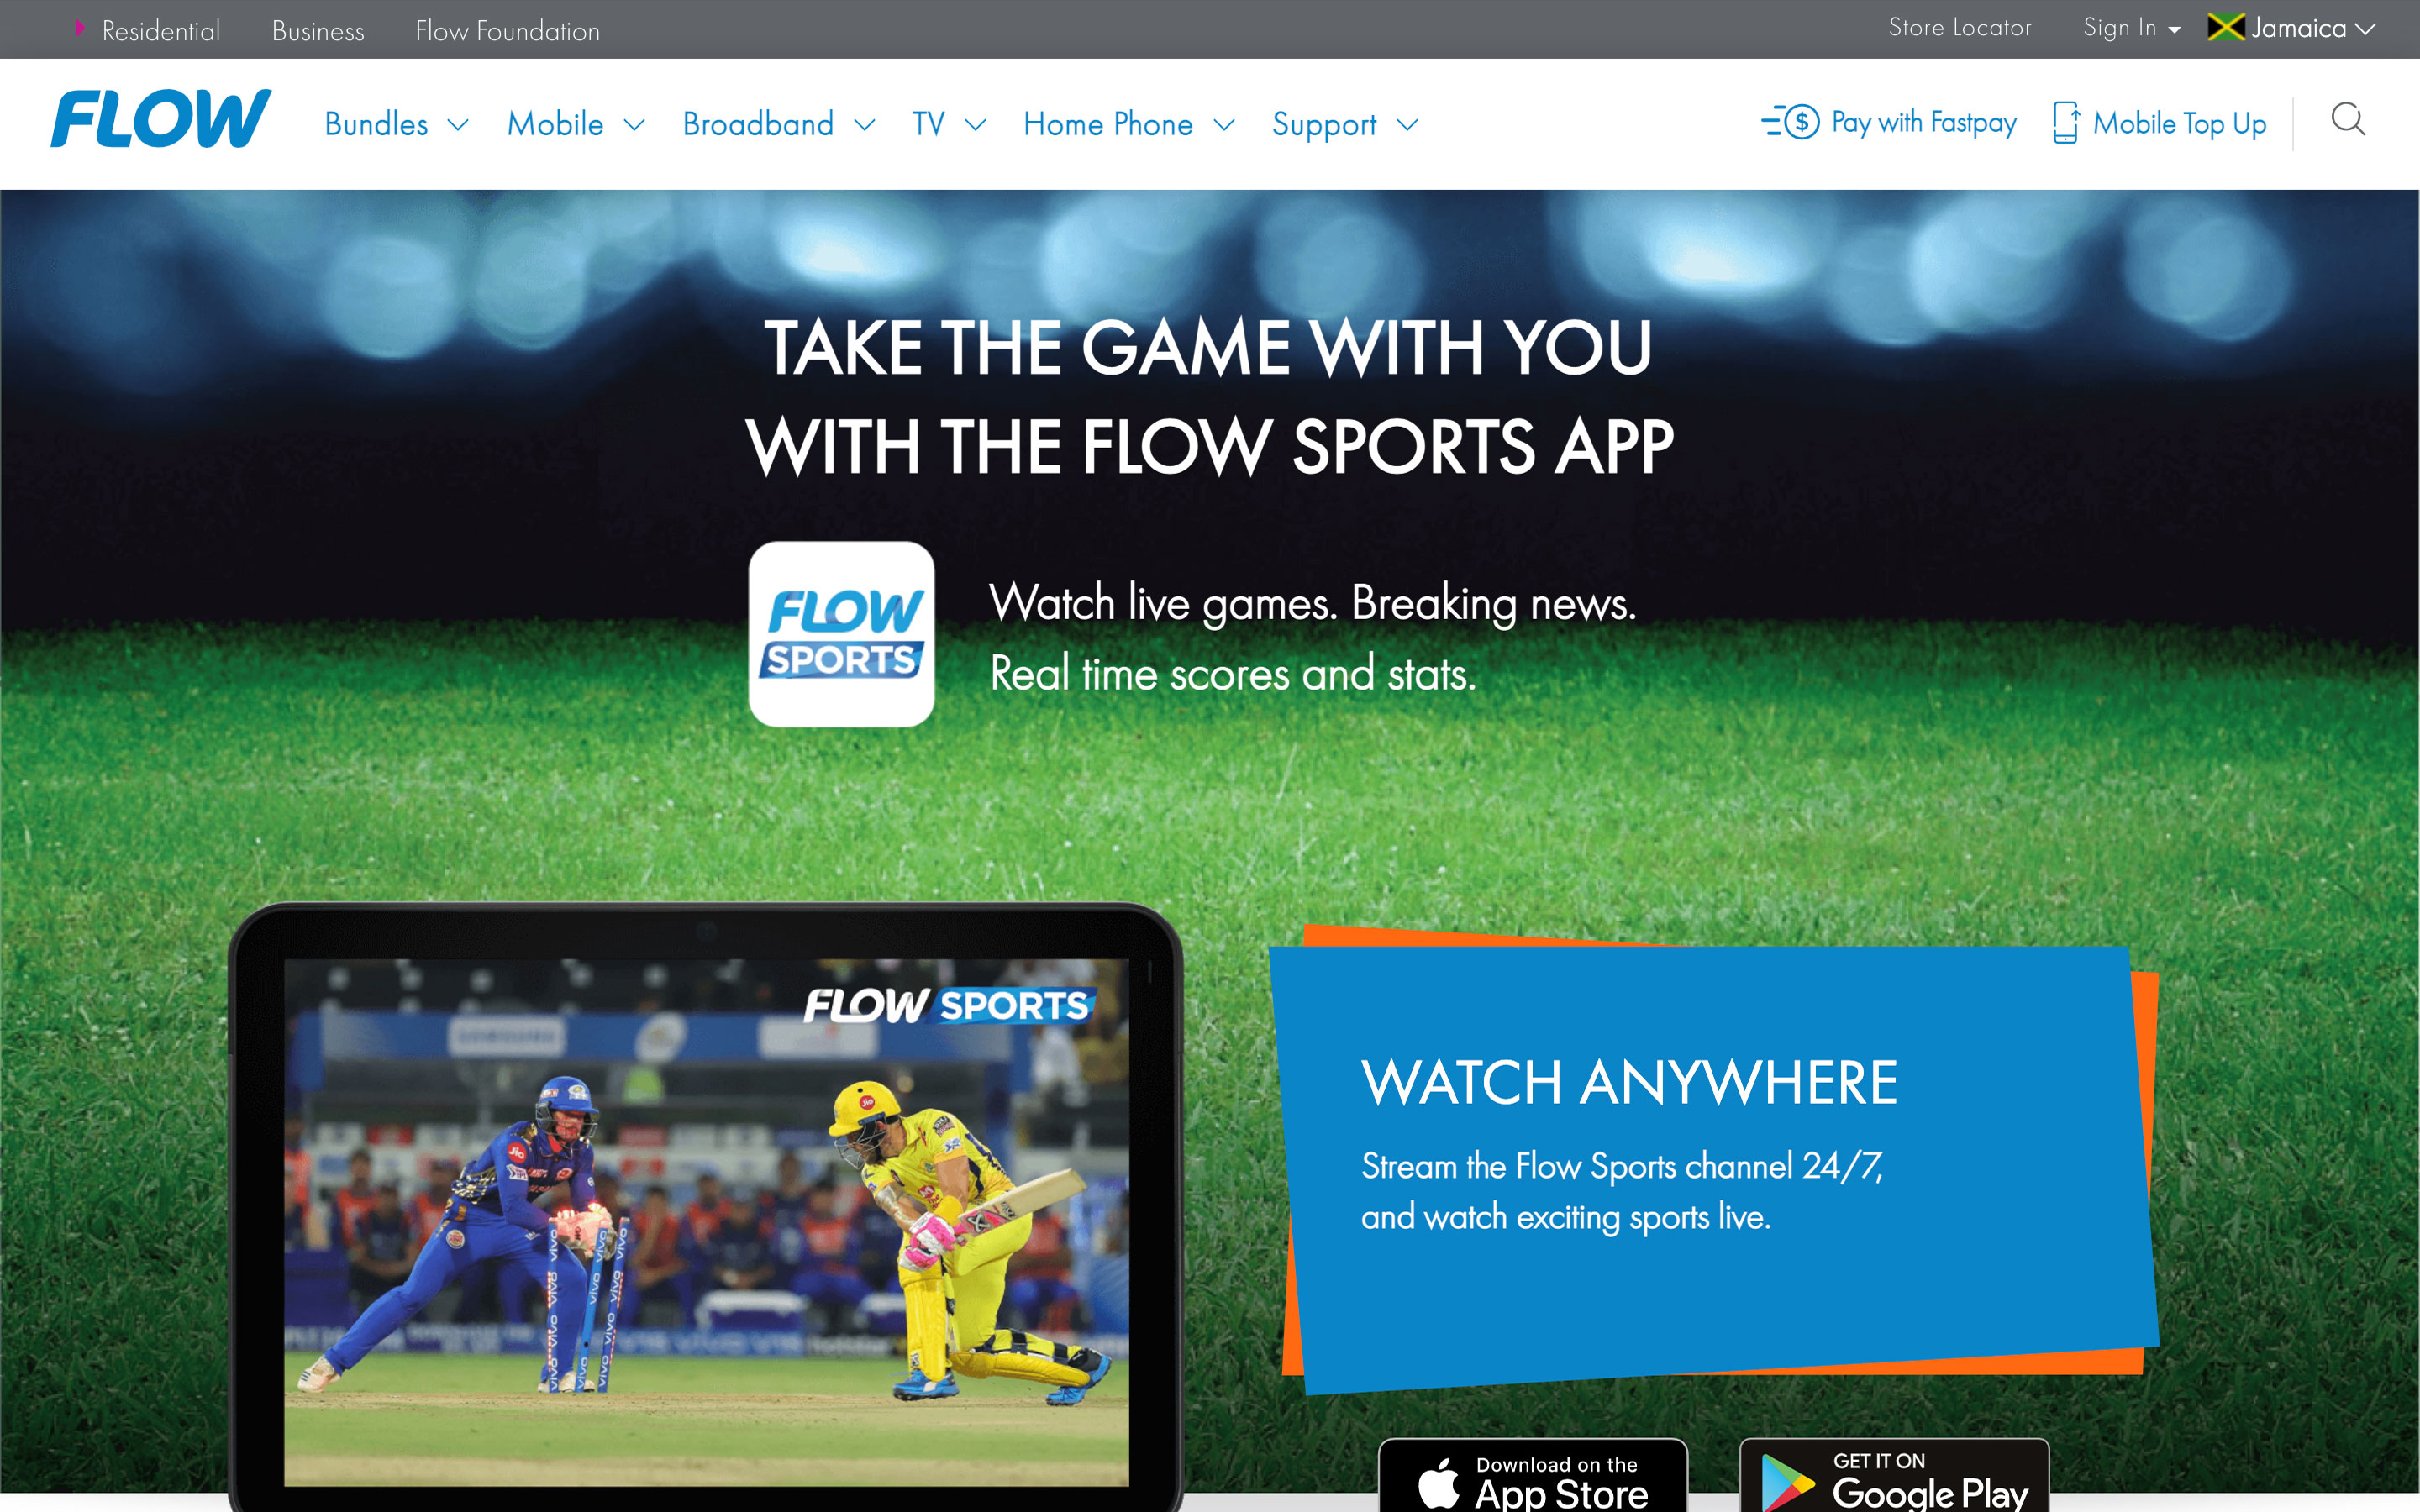 The updated Flow Sports app was launched on iOS, Android and web browsers within only four weeks.